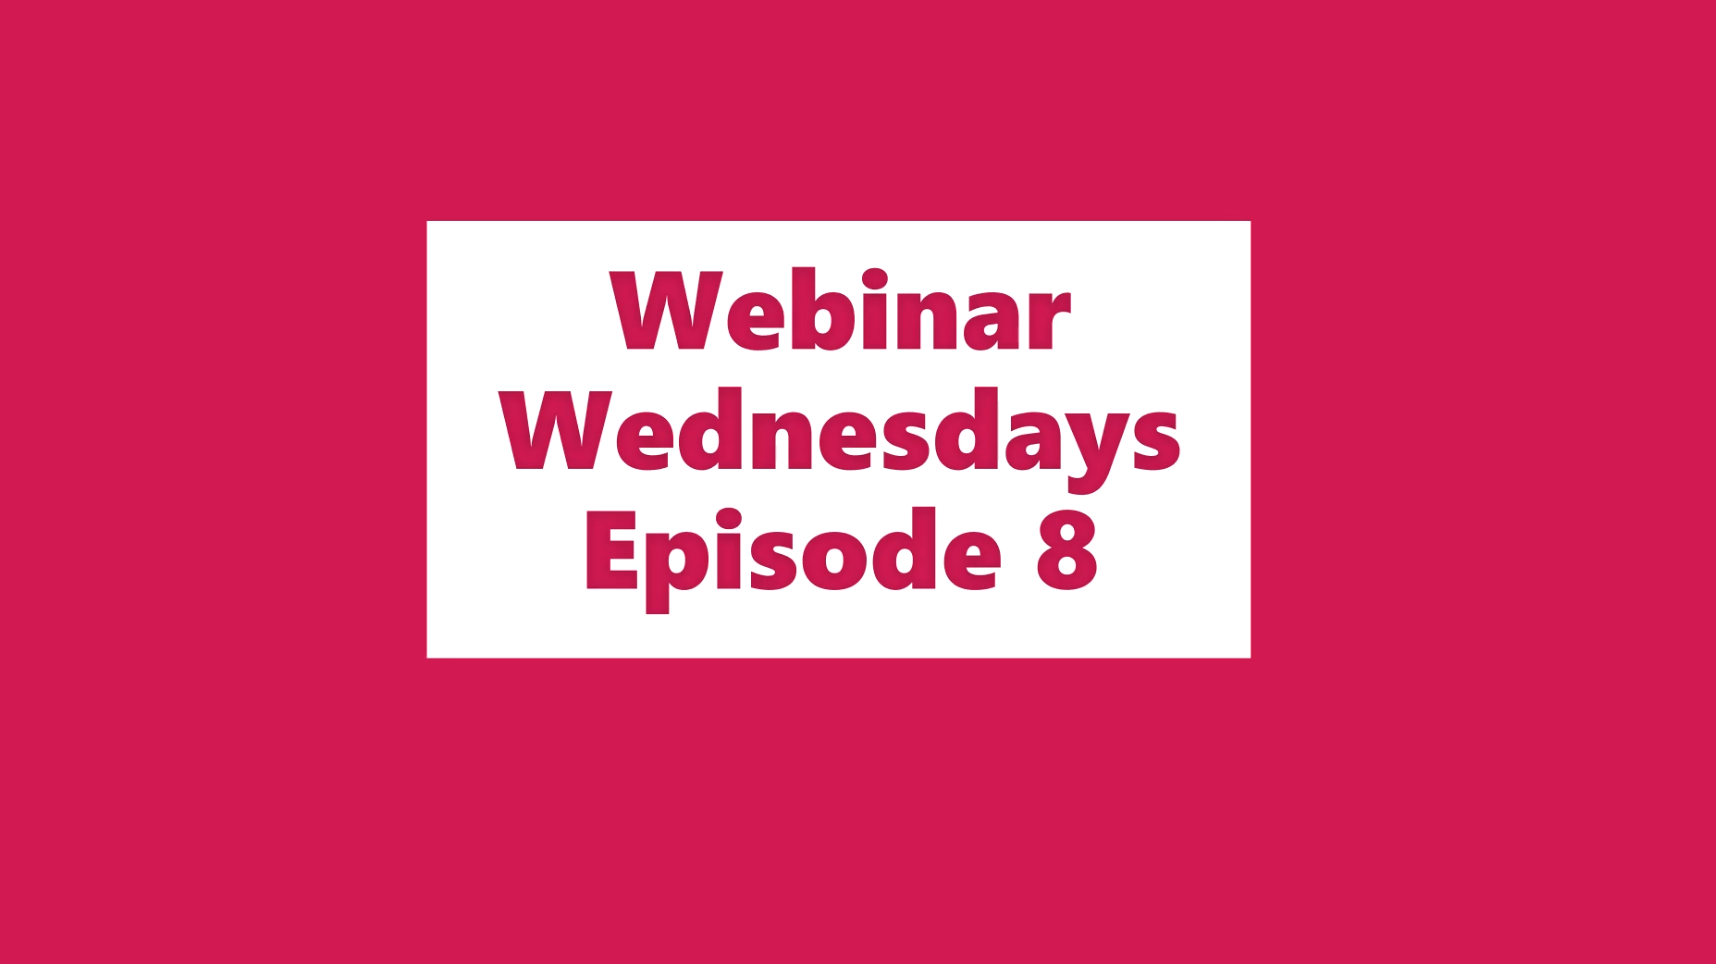 Webinar Wednesdays Episode 8 (a)